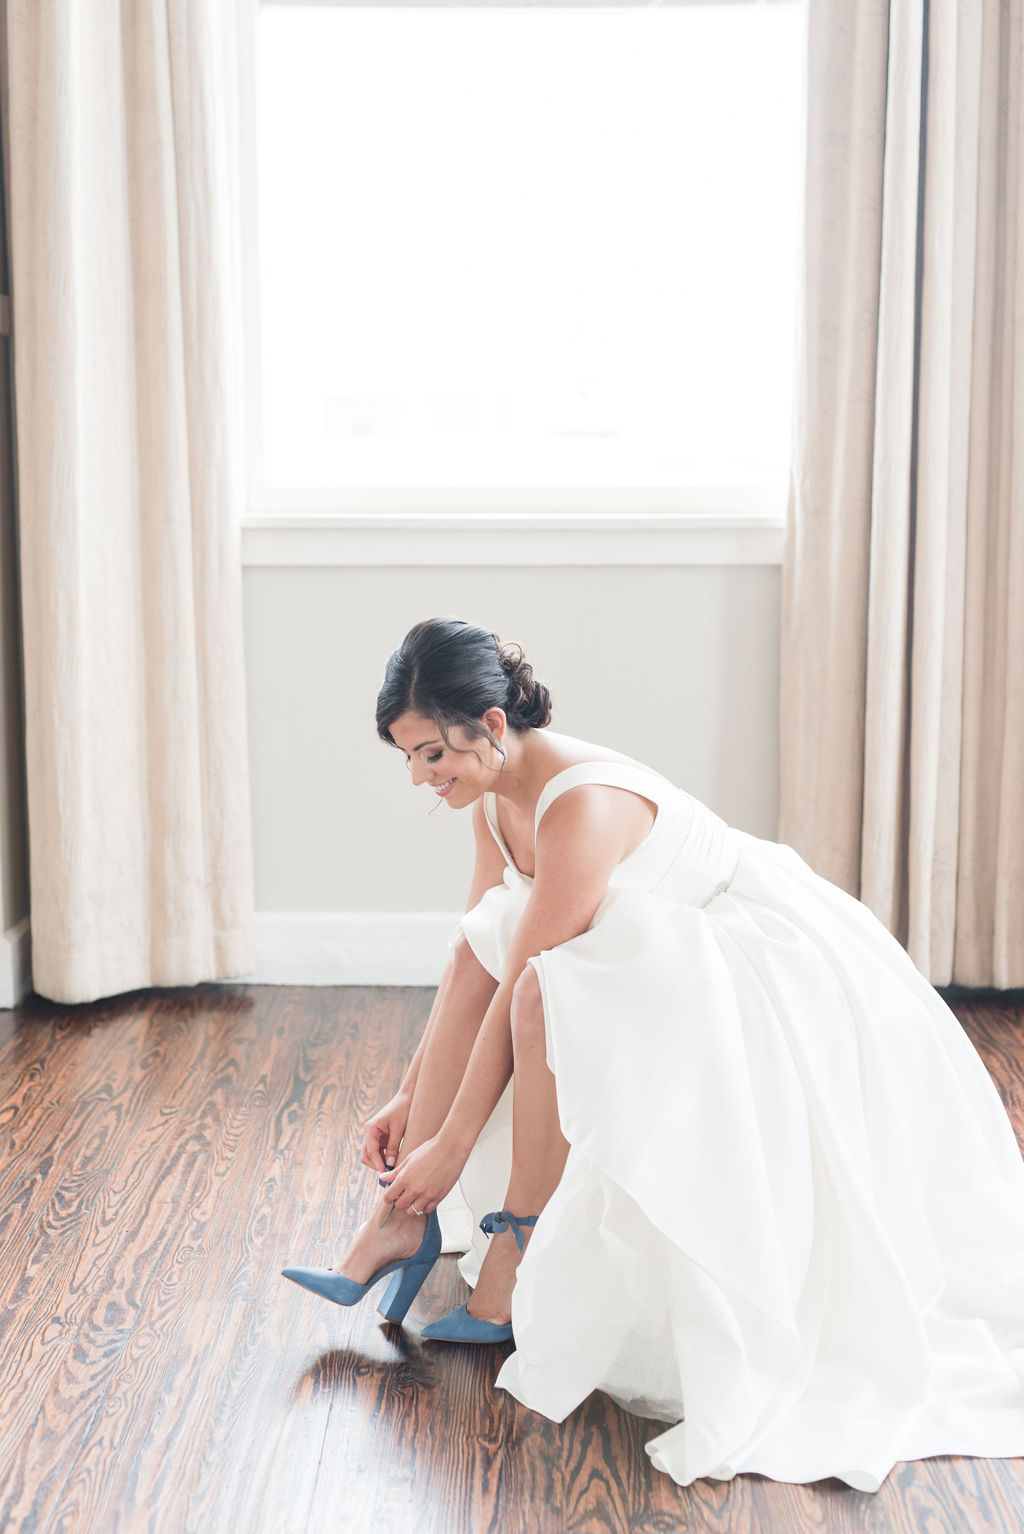 Bridal portrait: Dusty Blue and Blush Wedding at The Room on Main featured on Alexa Kay Events!